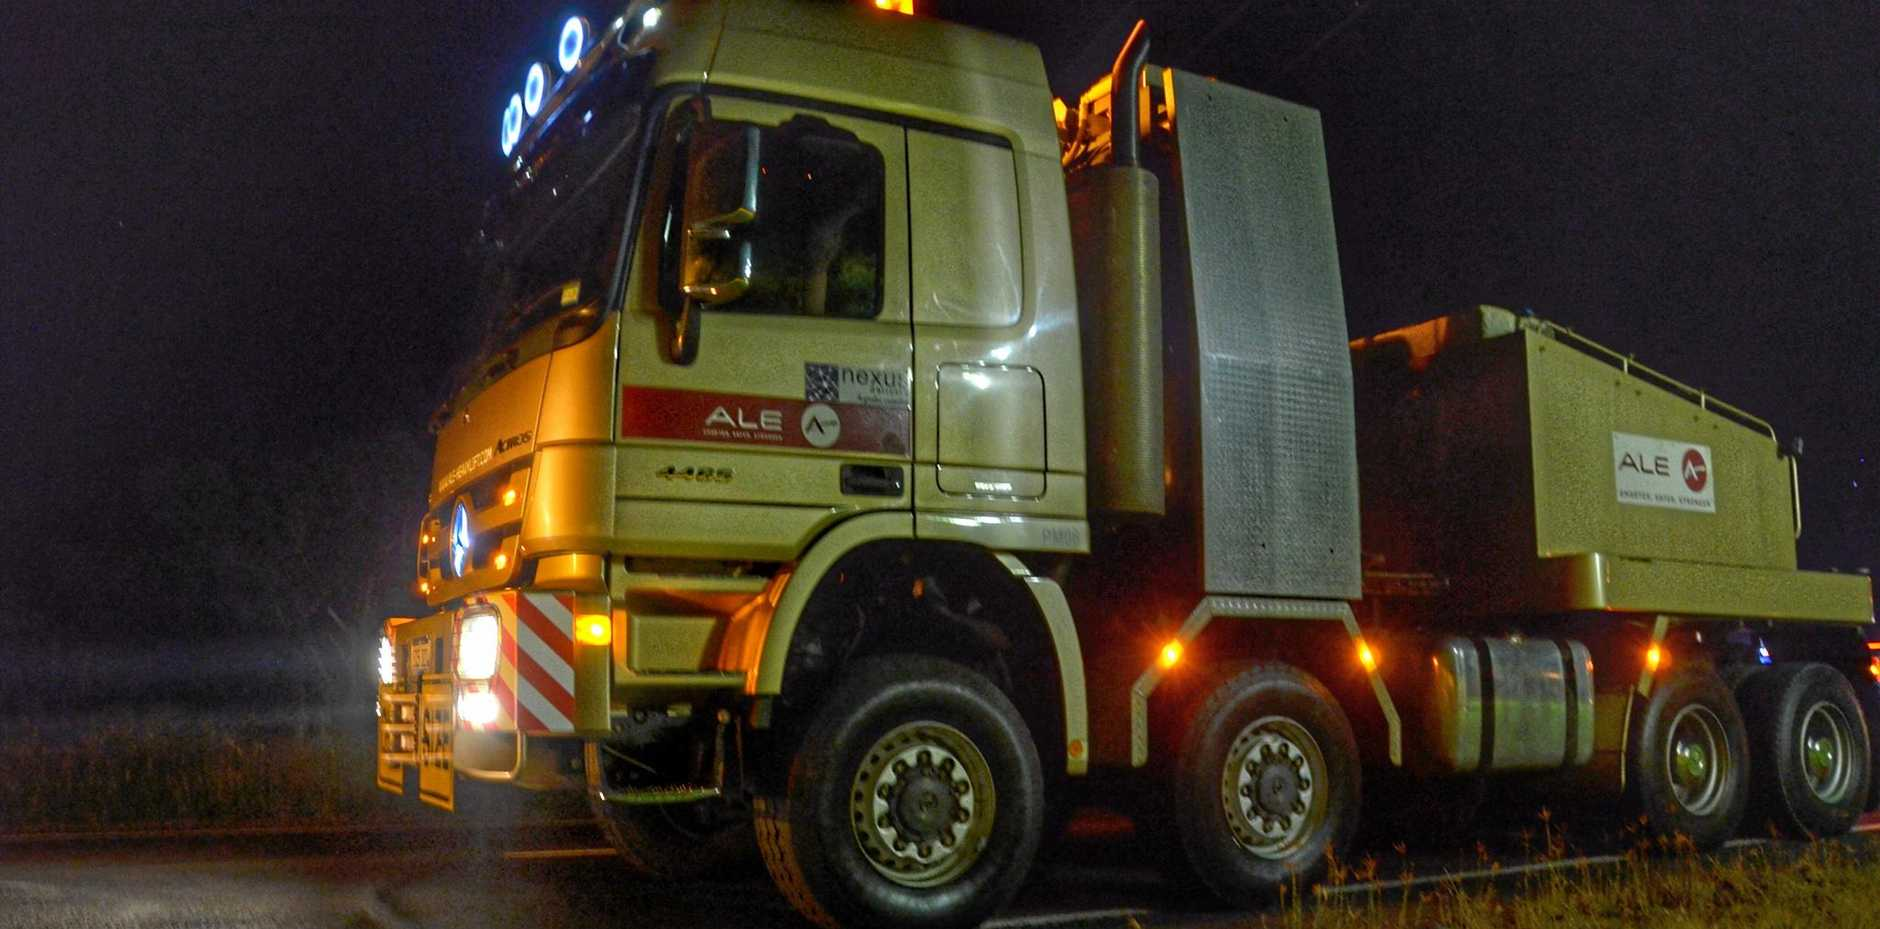 GOT THE GRUNT: The ALE Mercedes Benz Actros block truck led the pack and added the weight, and traction needed to get up the range.